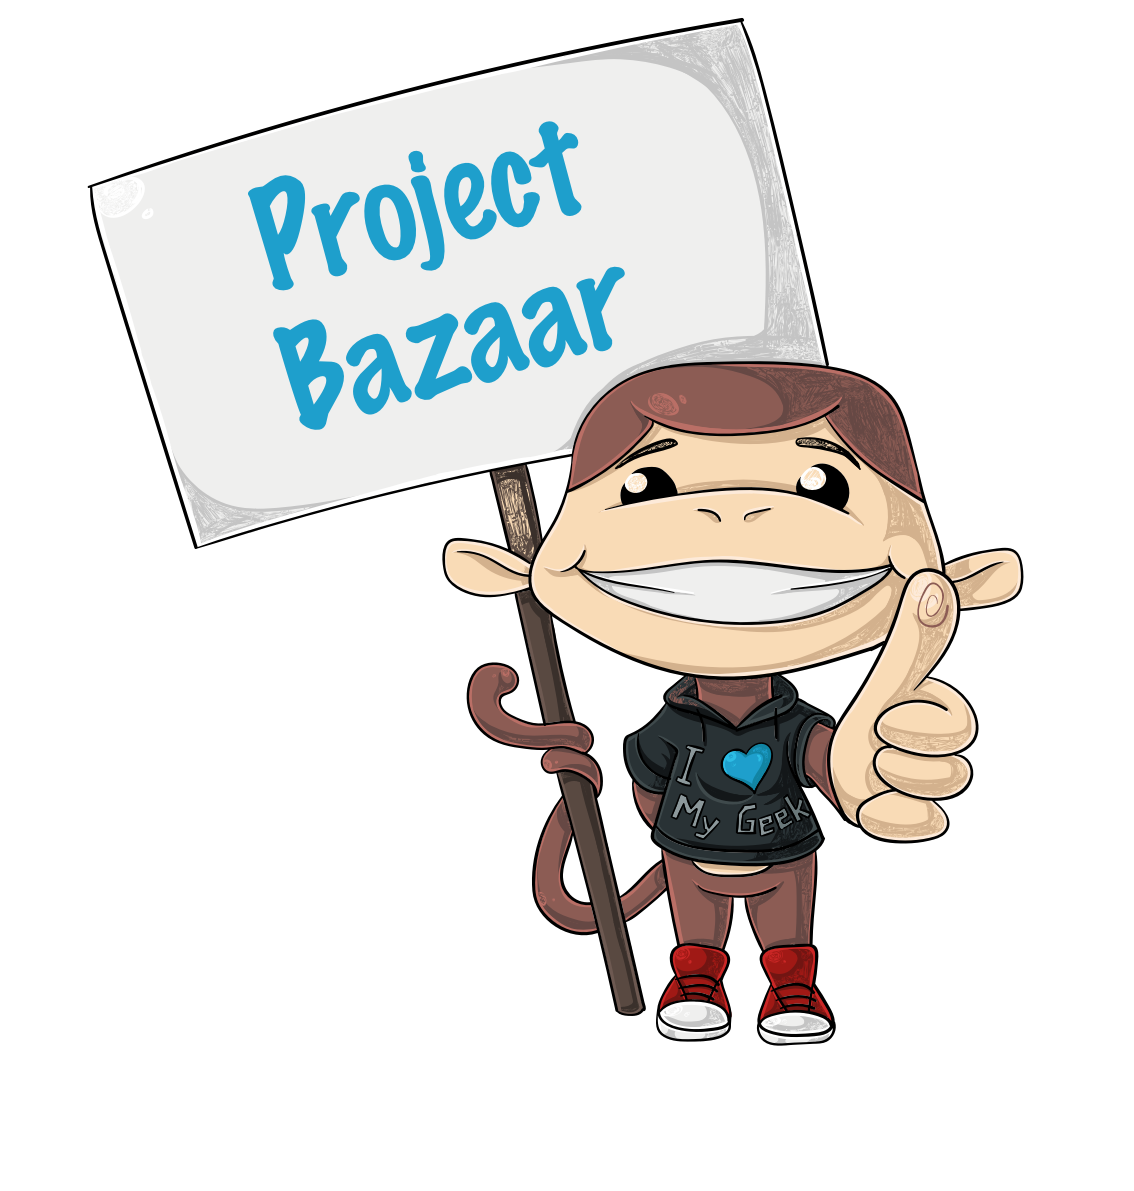 MacCody happily guides you to the project bazaar